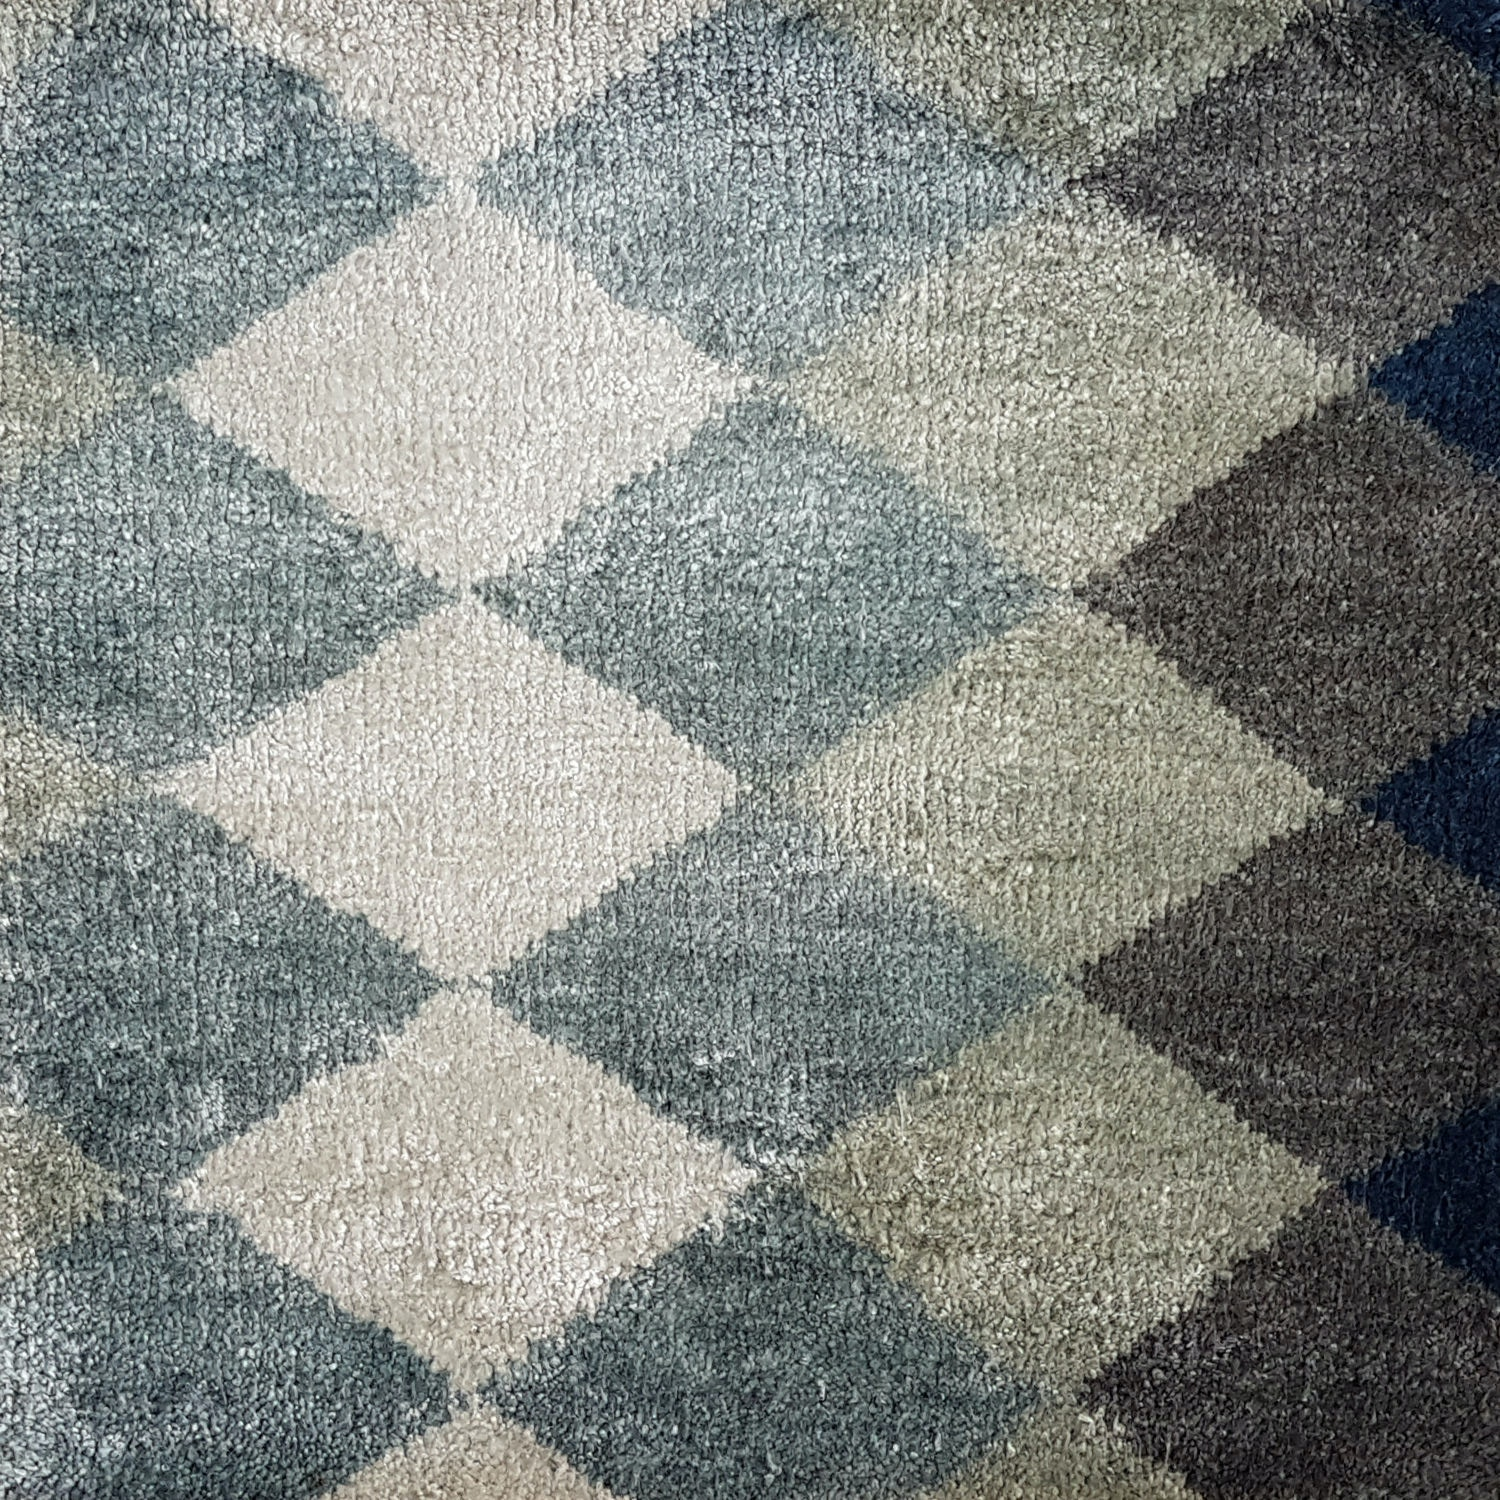 Brunschwig Carpet V4-203/Sp.Blue Grey CB-102464.BLUE GREY.0